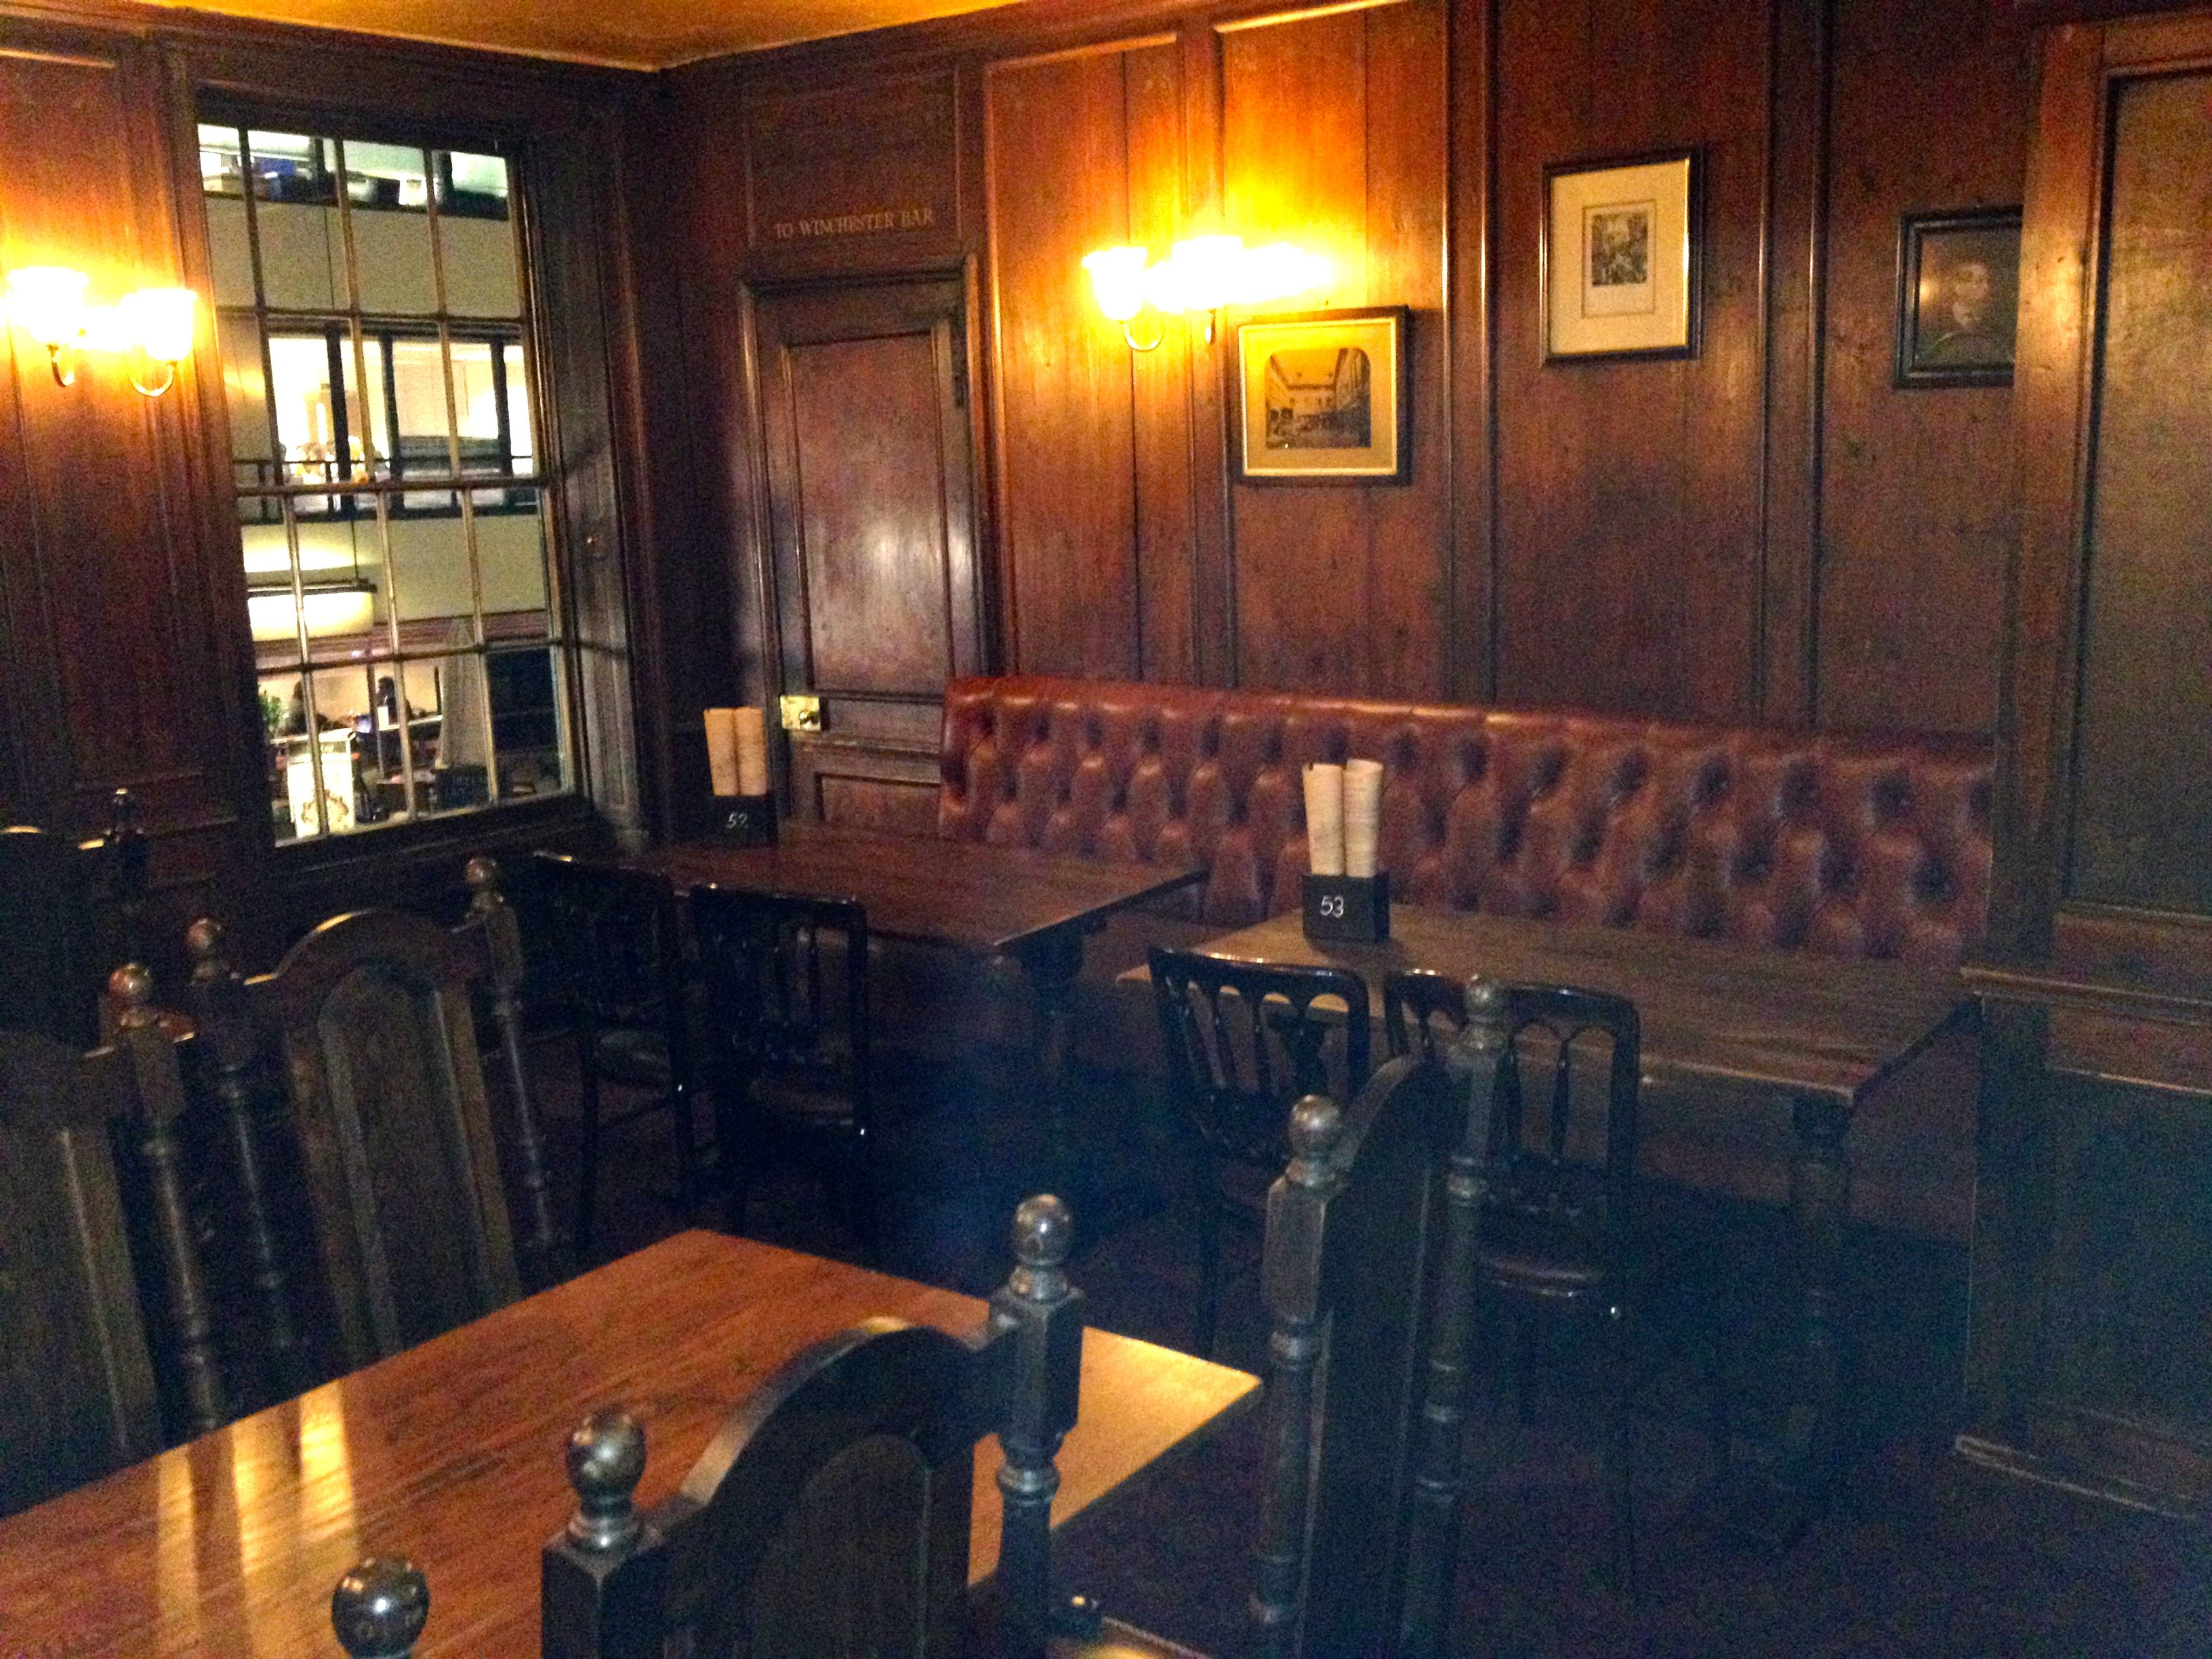 Interior of The George Inn